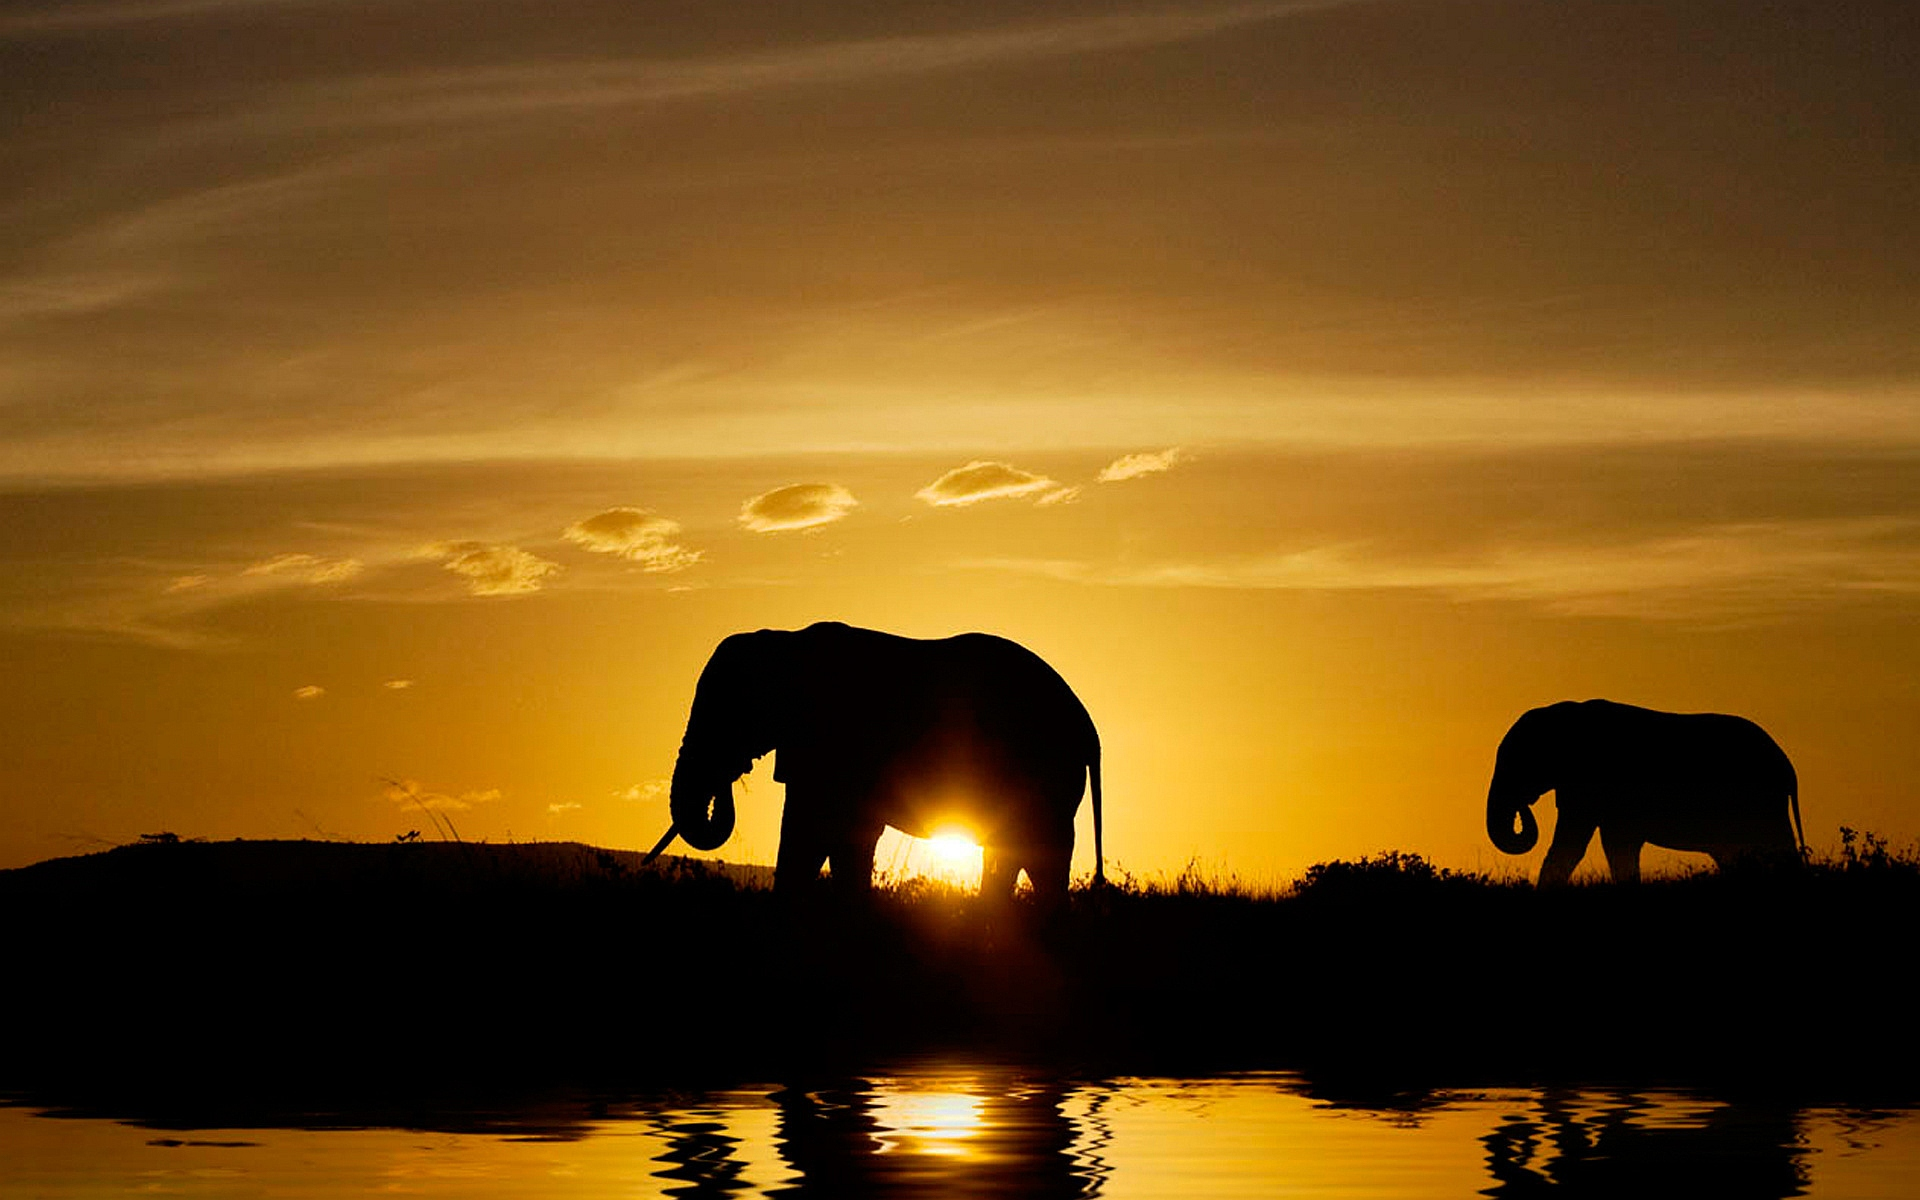 Sunset Elephants Wallpaper 1080p Wide Screen Wallpaper 1080p 2k 4k